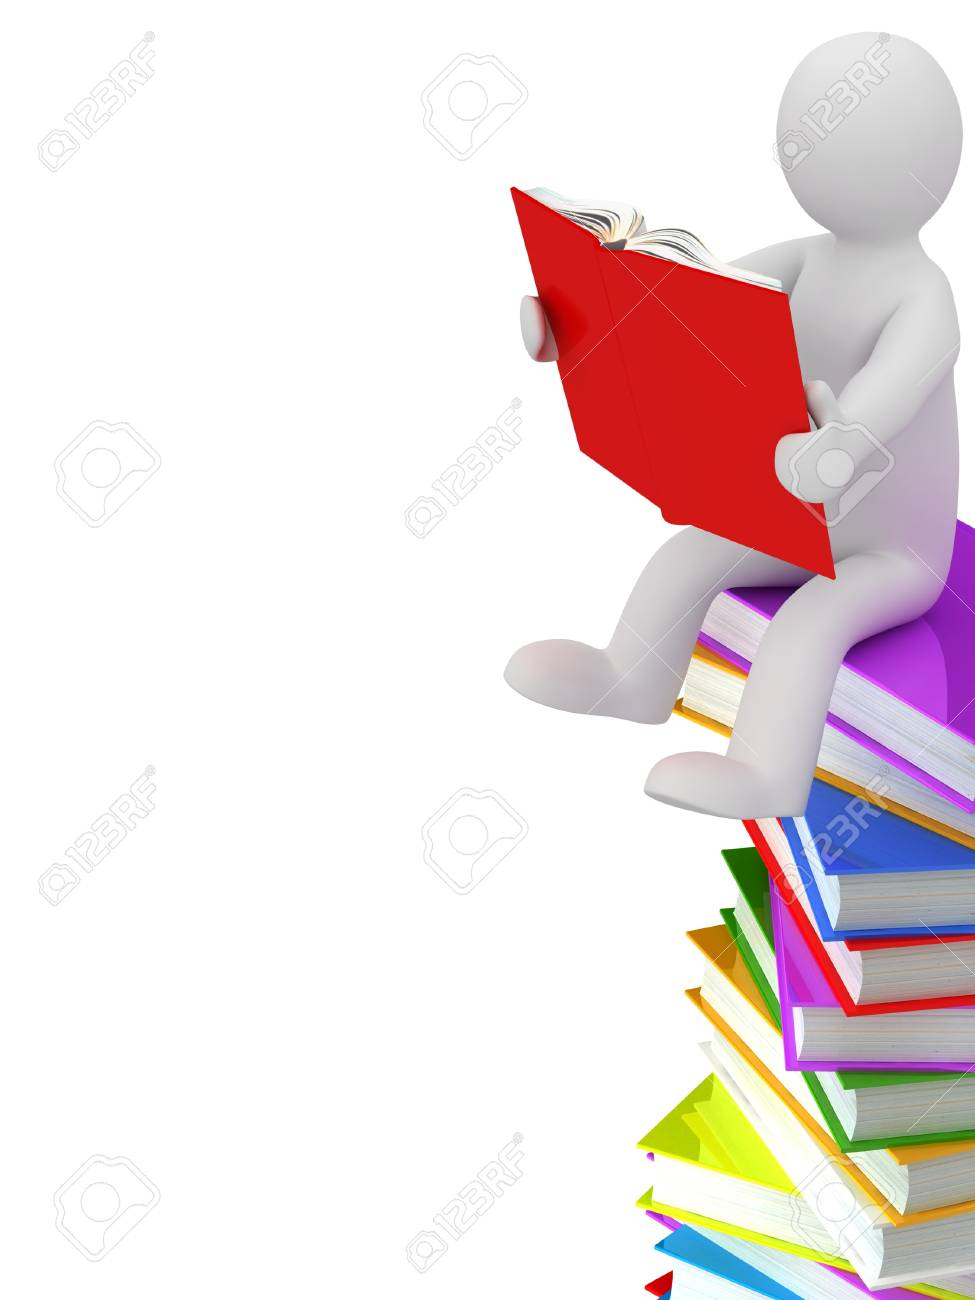 3D puppet on a pile of books, isolated on white background Stock Photo - 18326825